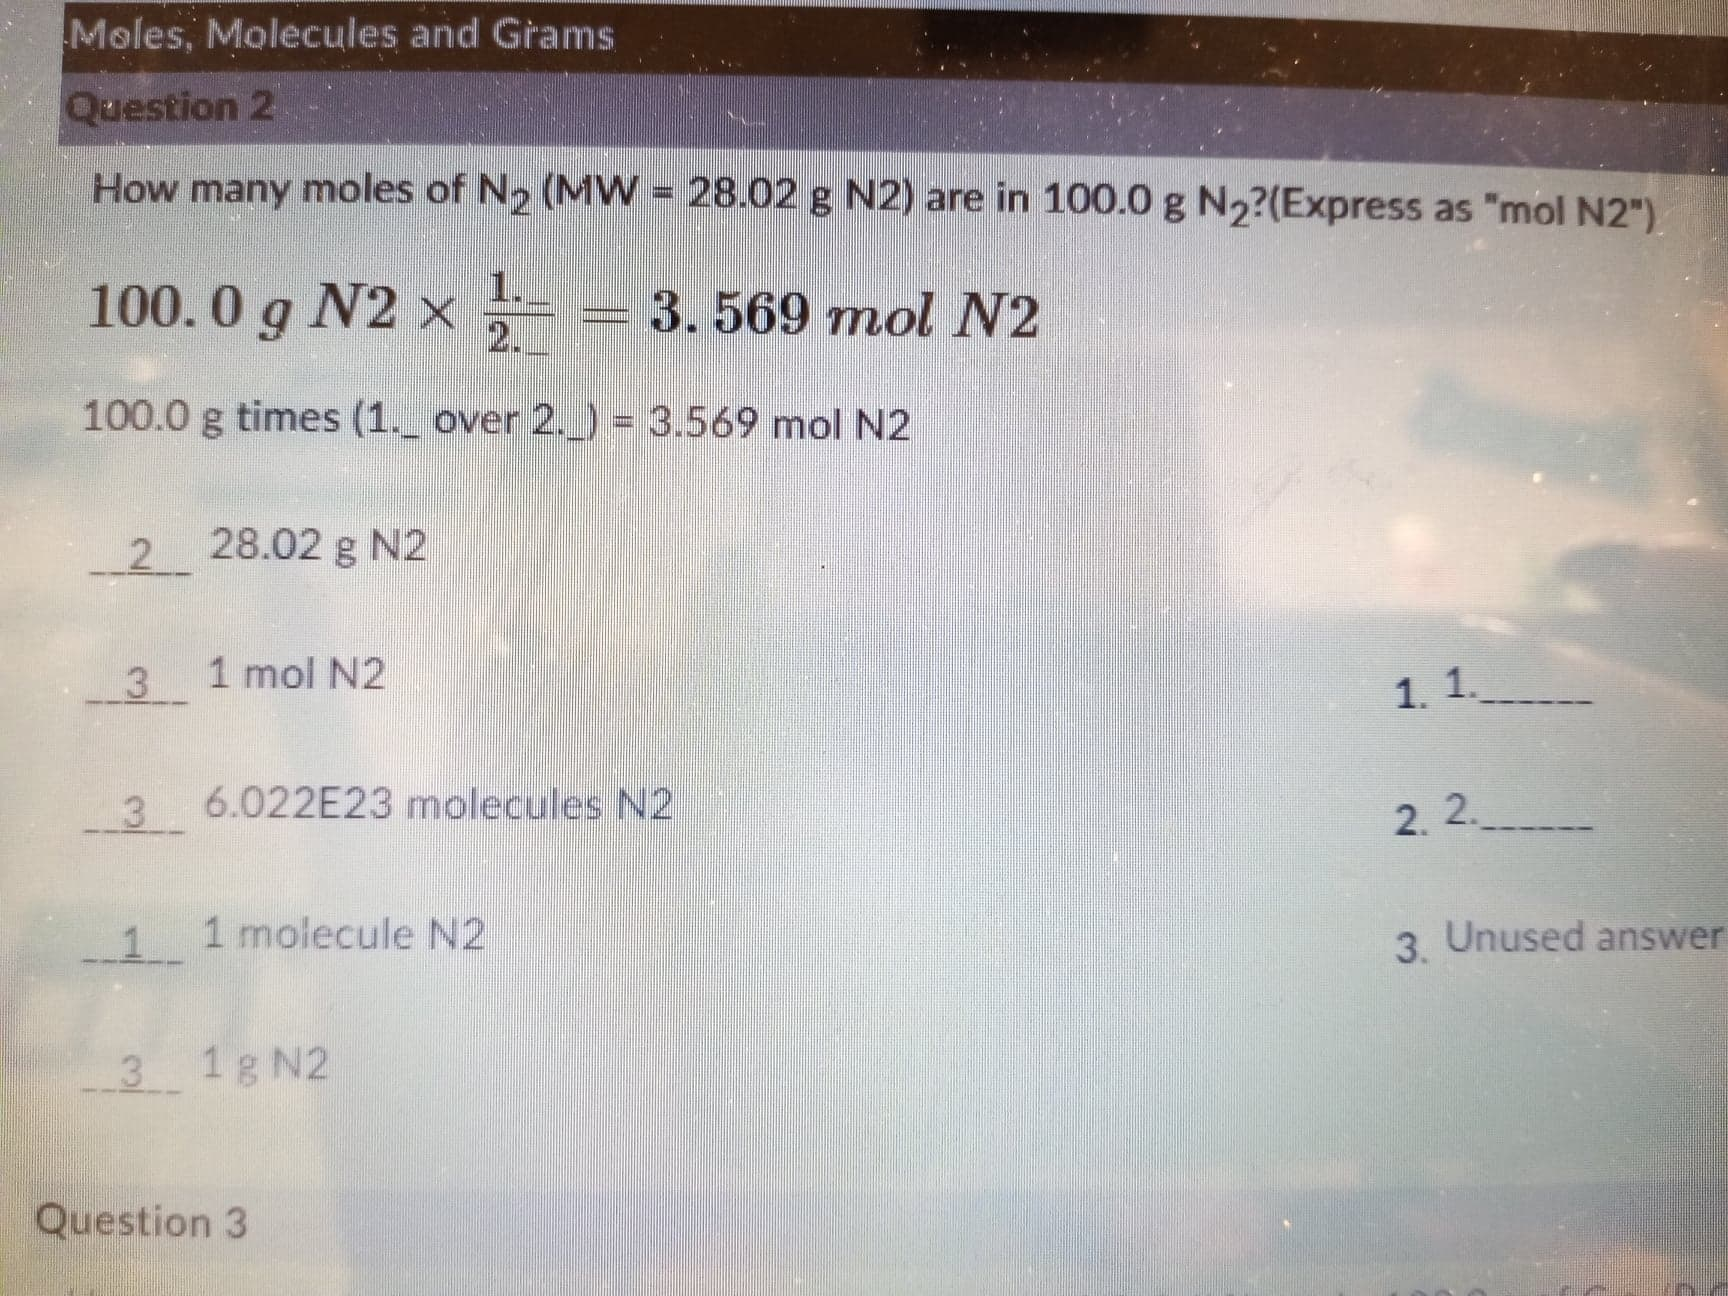 Answered Moles Molecules And Grams Question 2